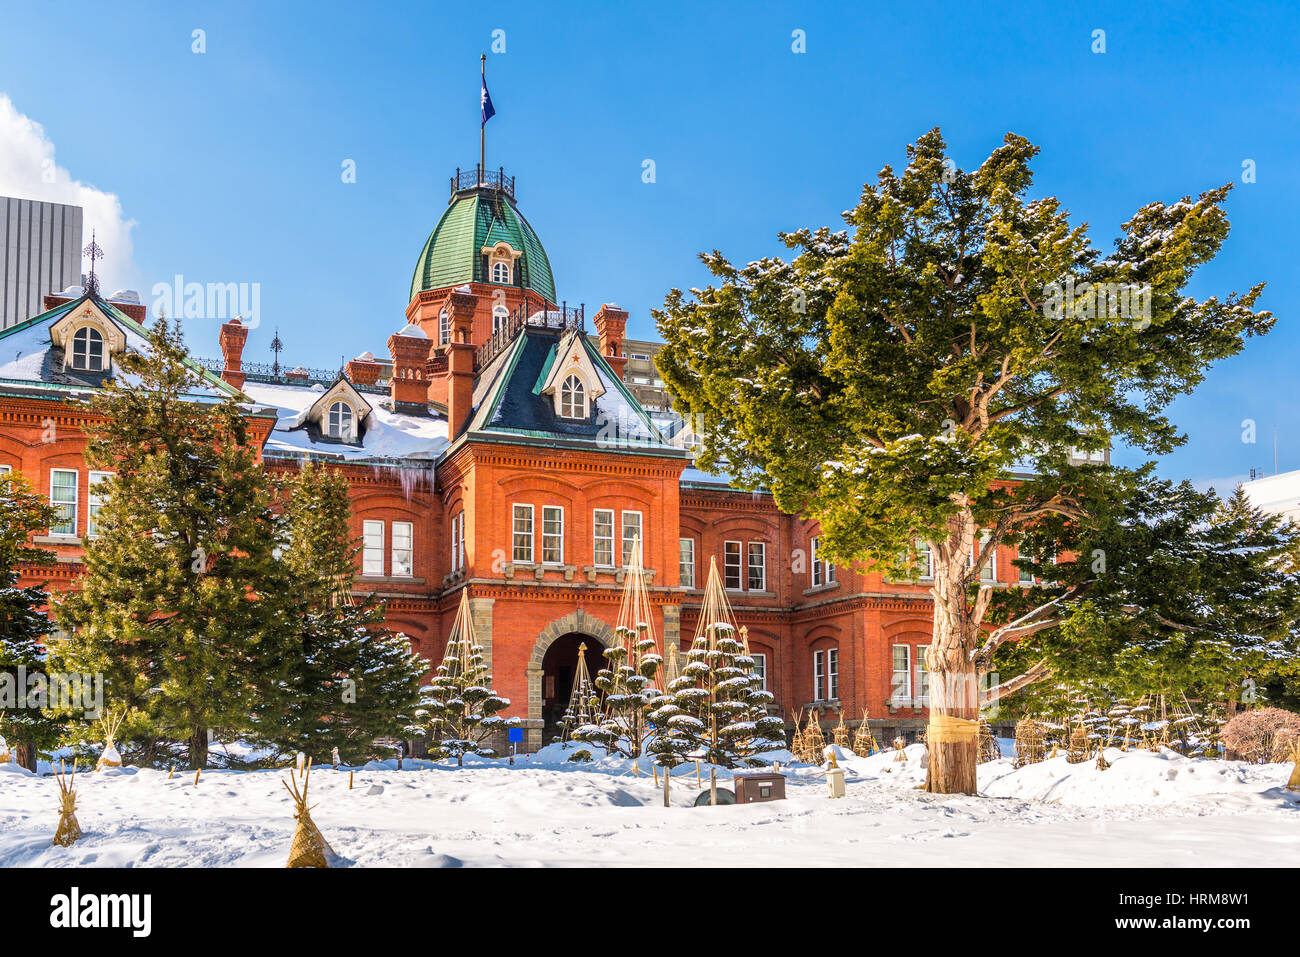 Sapporo, Japan at the Former Hokkaido Government offices during winter. - Stock Image